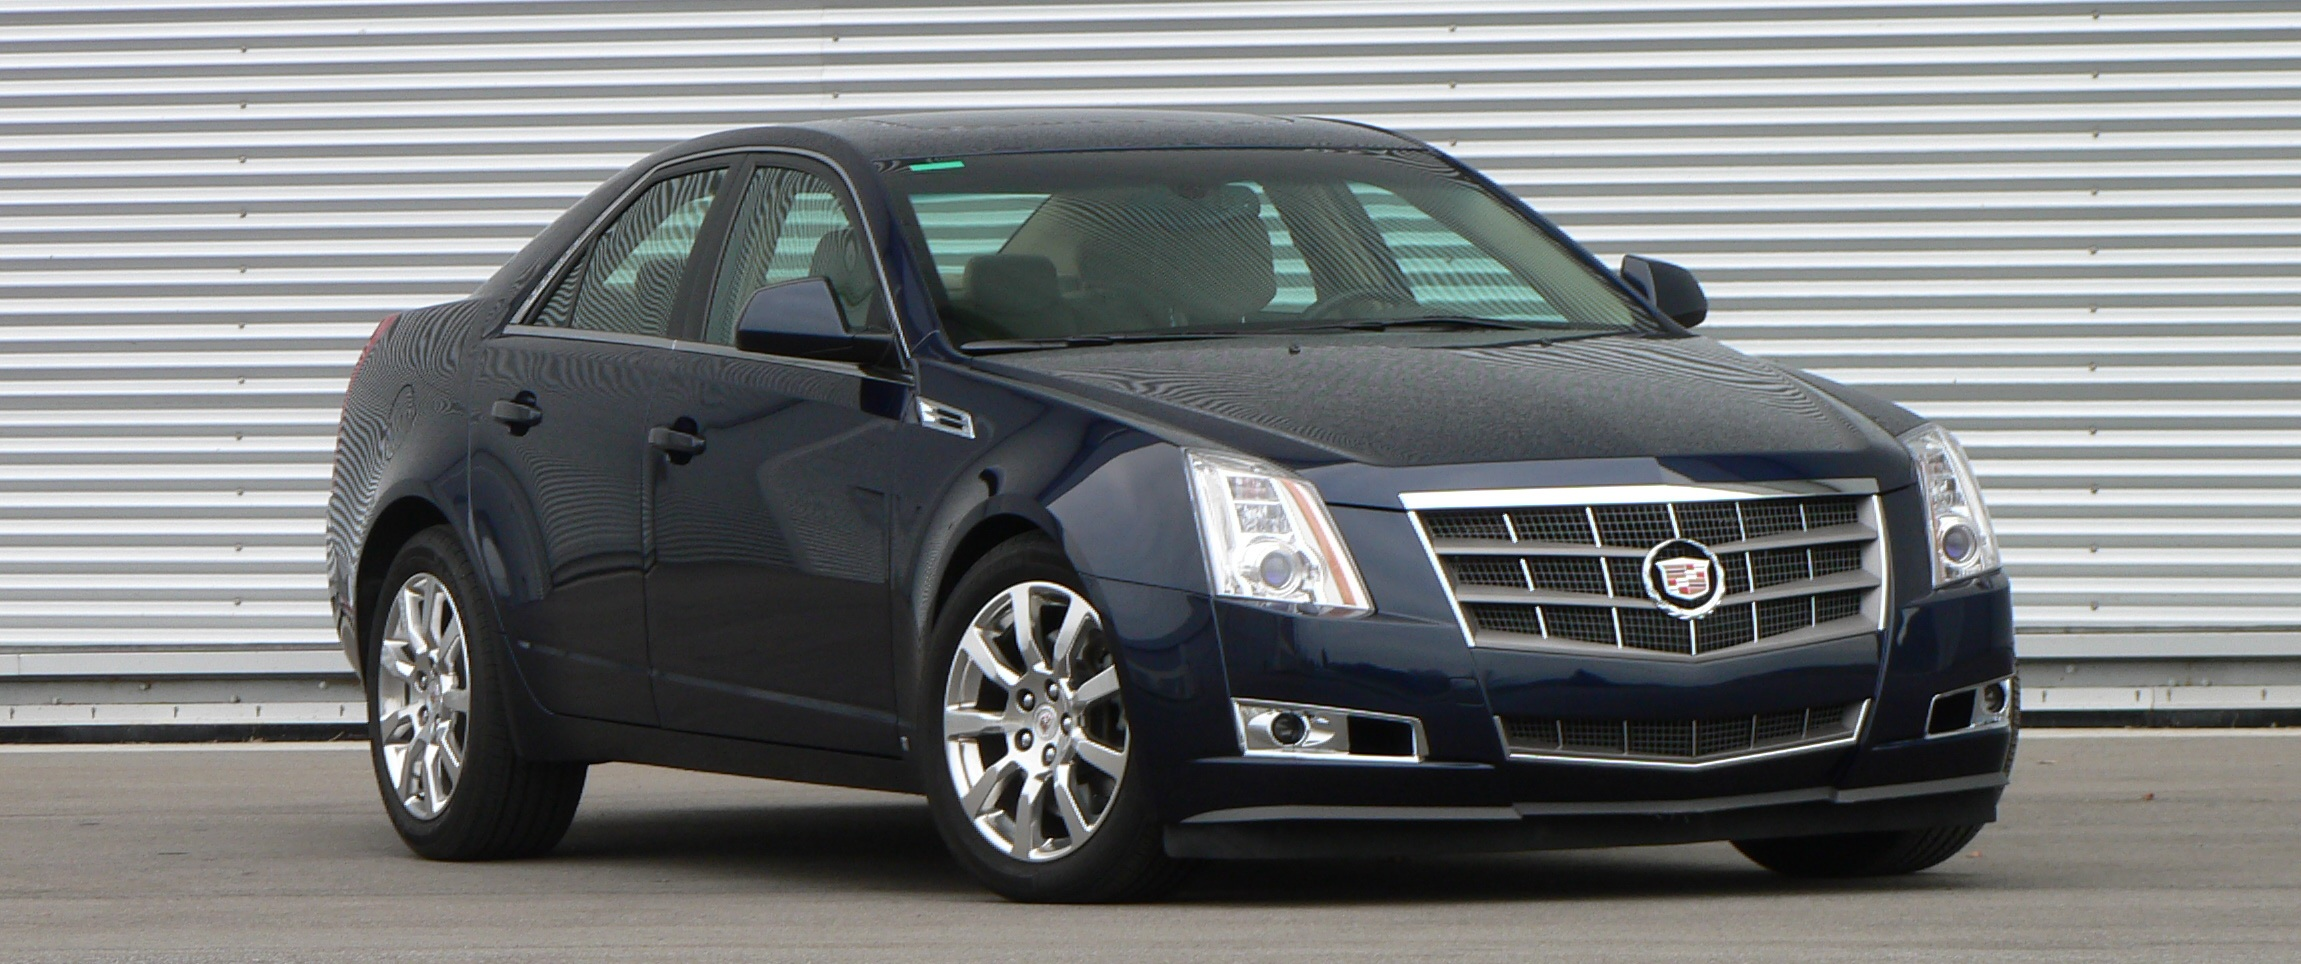 just in refreshed 2018 cadillac xts debuts with ct6 inspired styling ats to follow. Black Bedroom Furniture Sets. Home Design Ideas